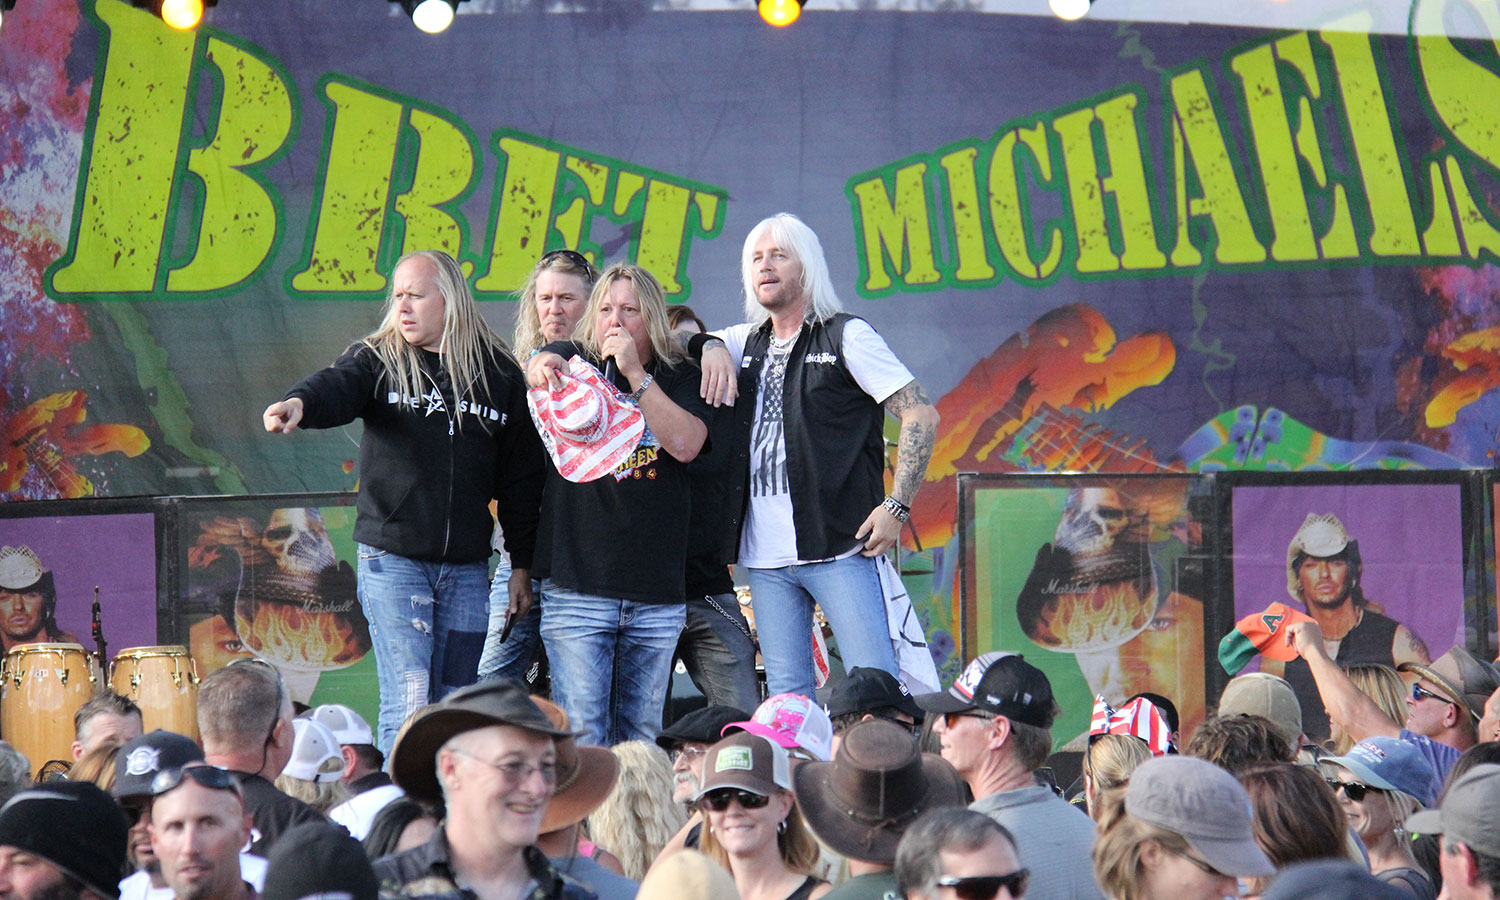 Bret Michaels and Band